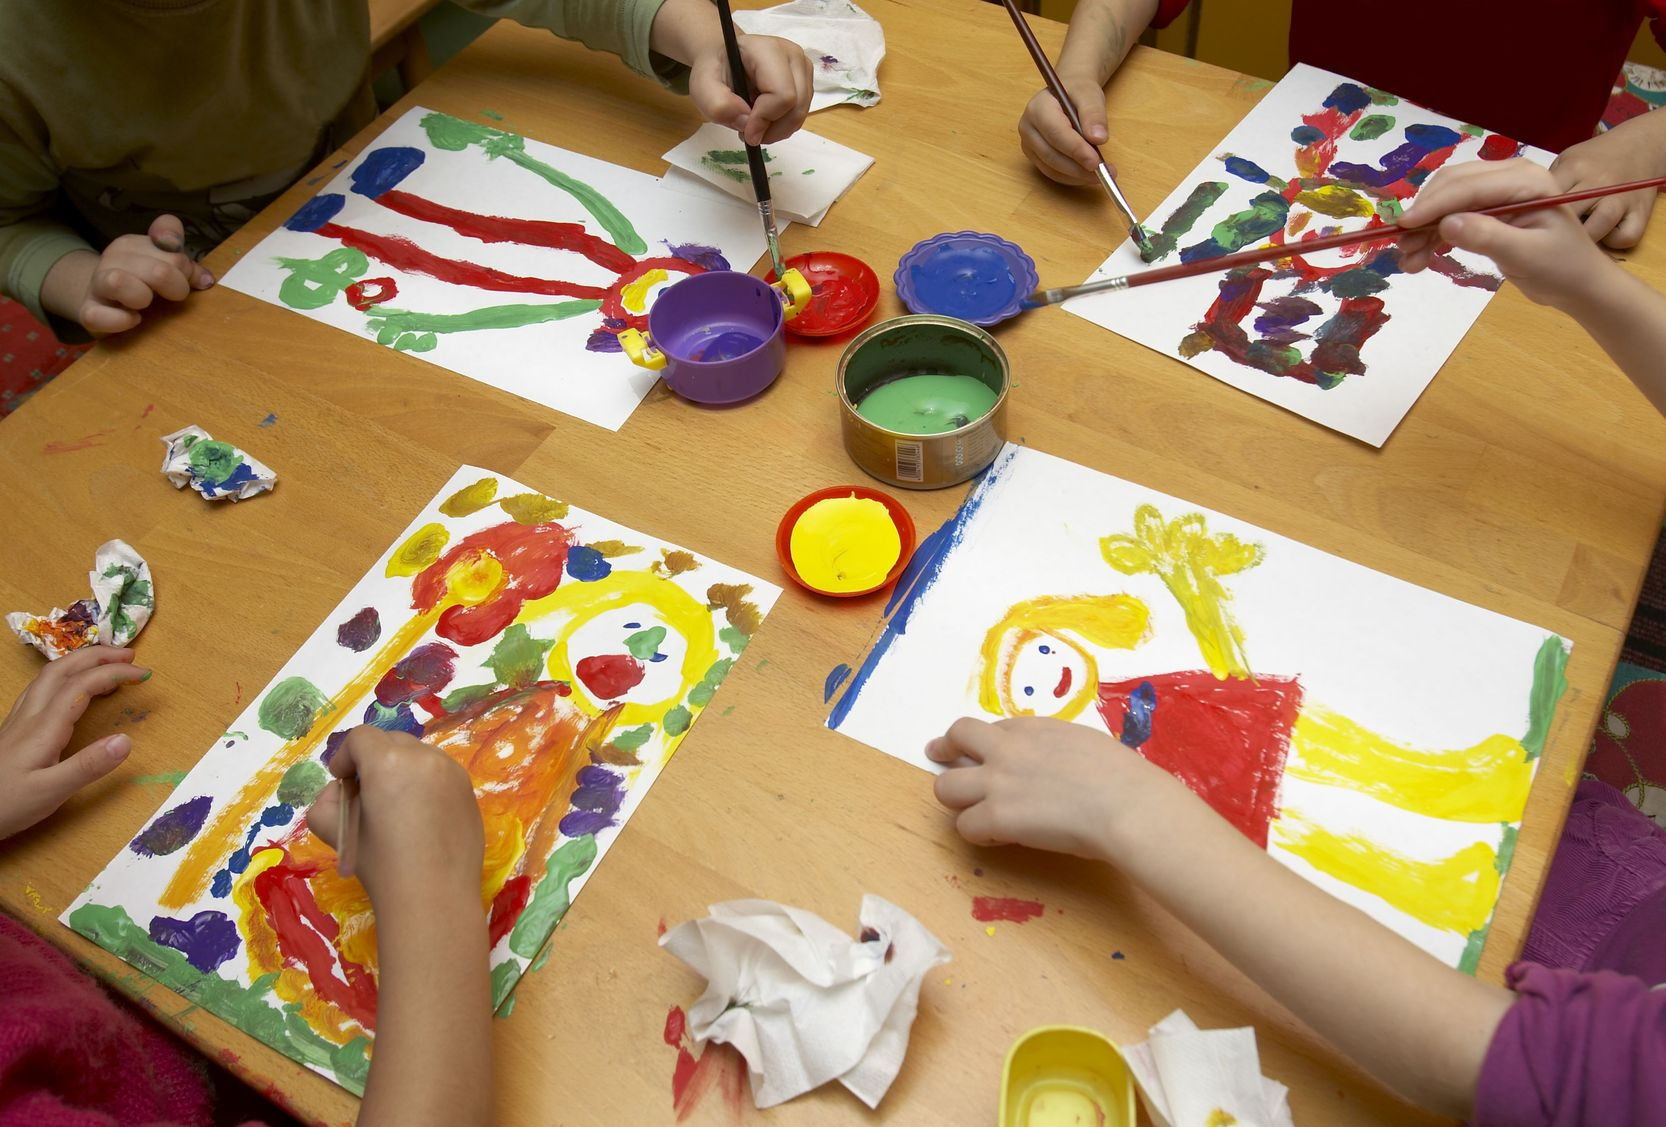 The benefits of play for children and adults spark art therapy